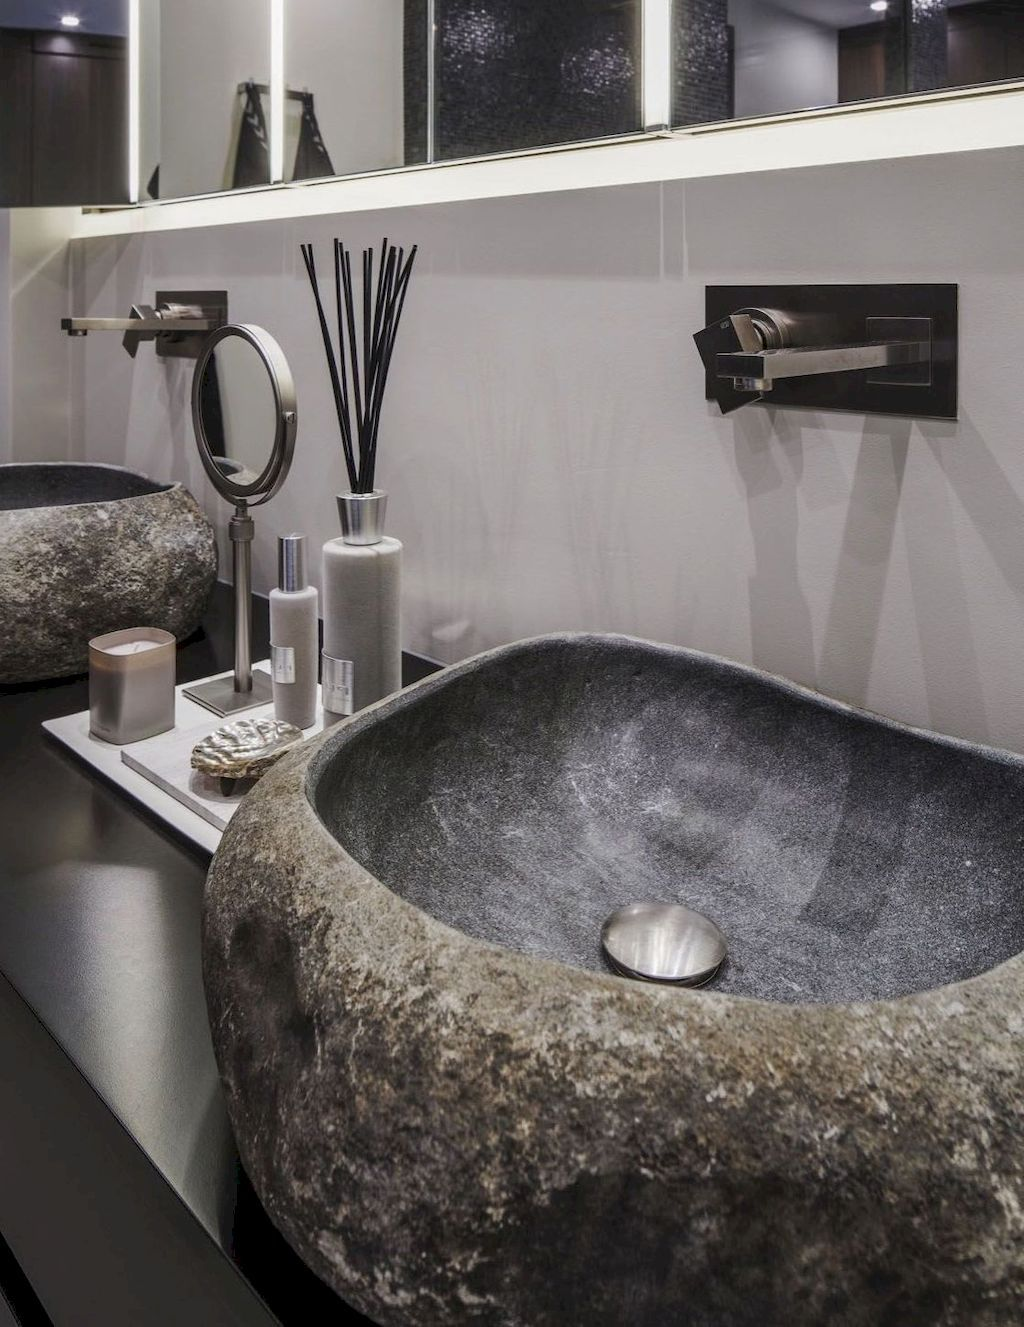 Cool 44 Awesome Natural Stone Bathrooms Ideas Source Link Https Moodecor Co 8298 44 Awesome Natural Stone B Natural Stone Bathroom Stone Sink Stone Bathroom